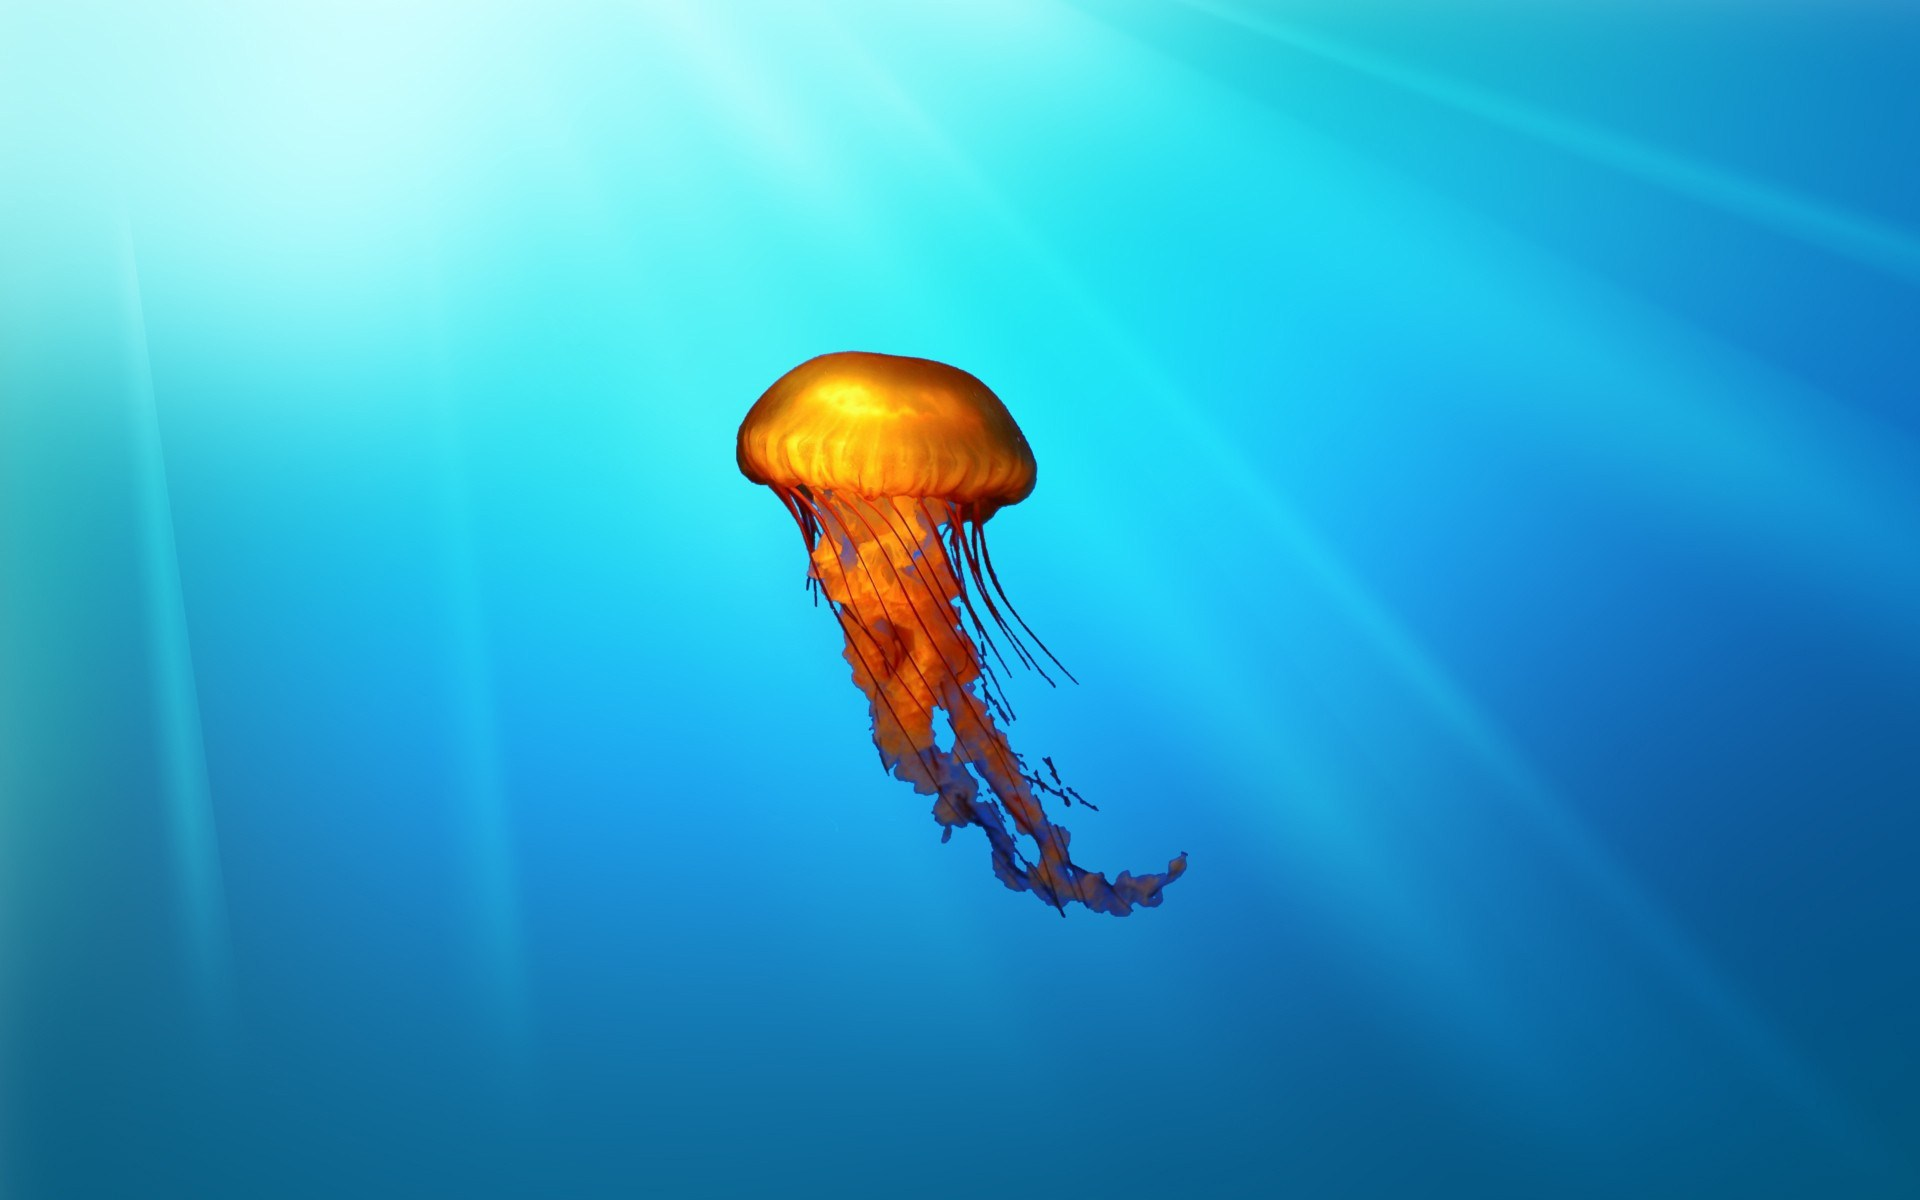 Jellyfish wallpapers hd wallpapersafari - Jellyfish hd images ...